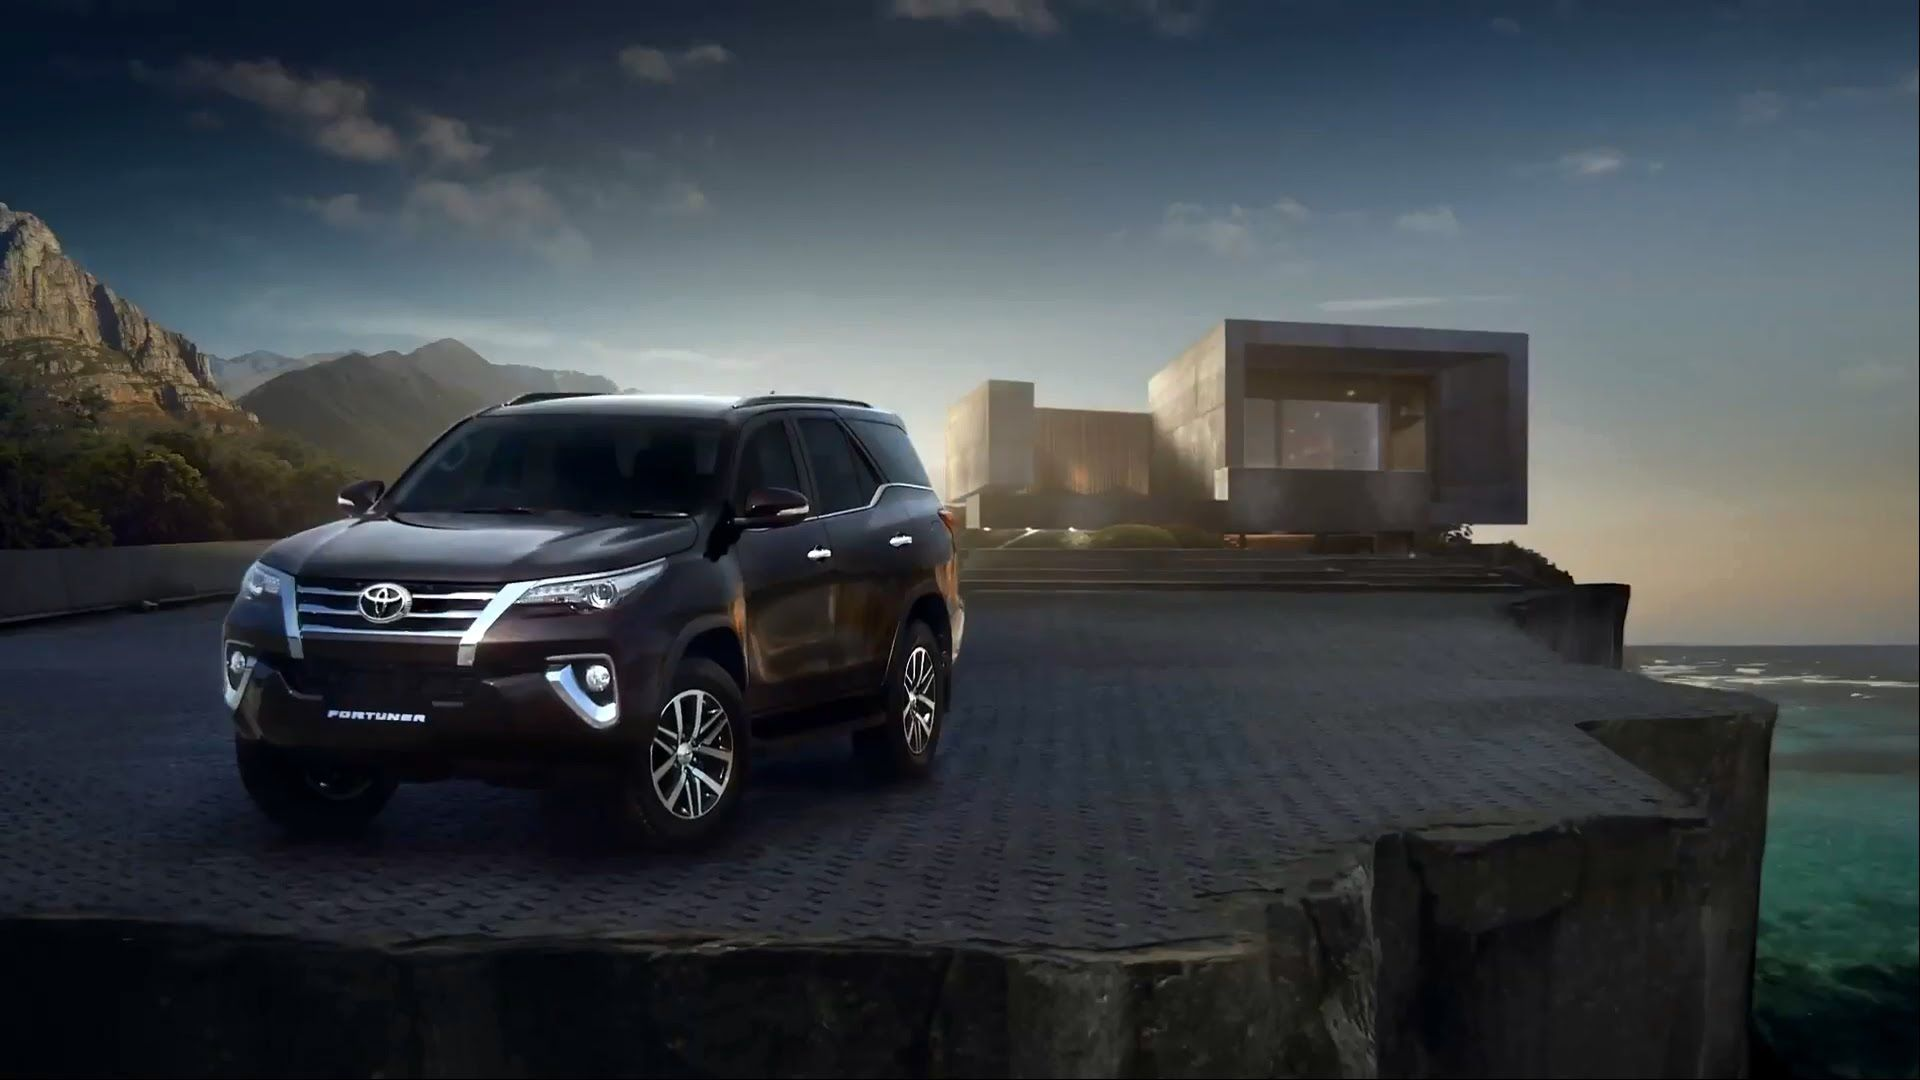 Cool Toyota Fortuner 2016 Hd Wallpaper Toyota Fortuner 2016 Toyota Hd Wallpaper